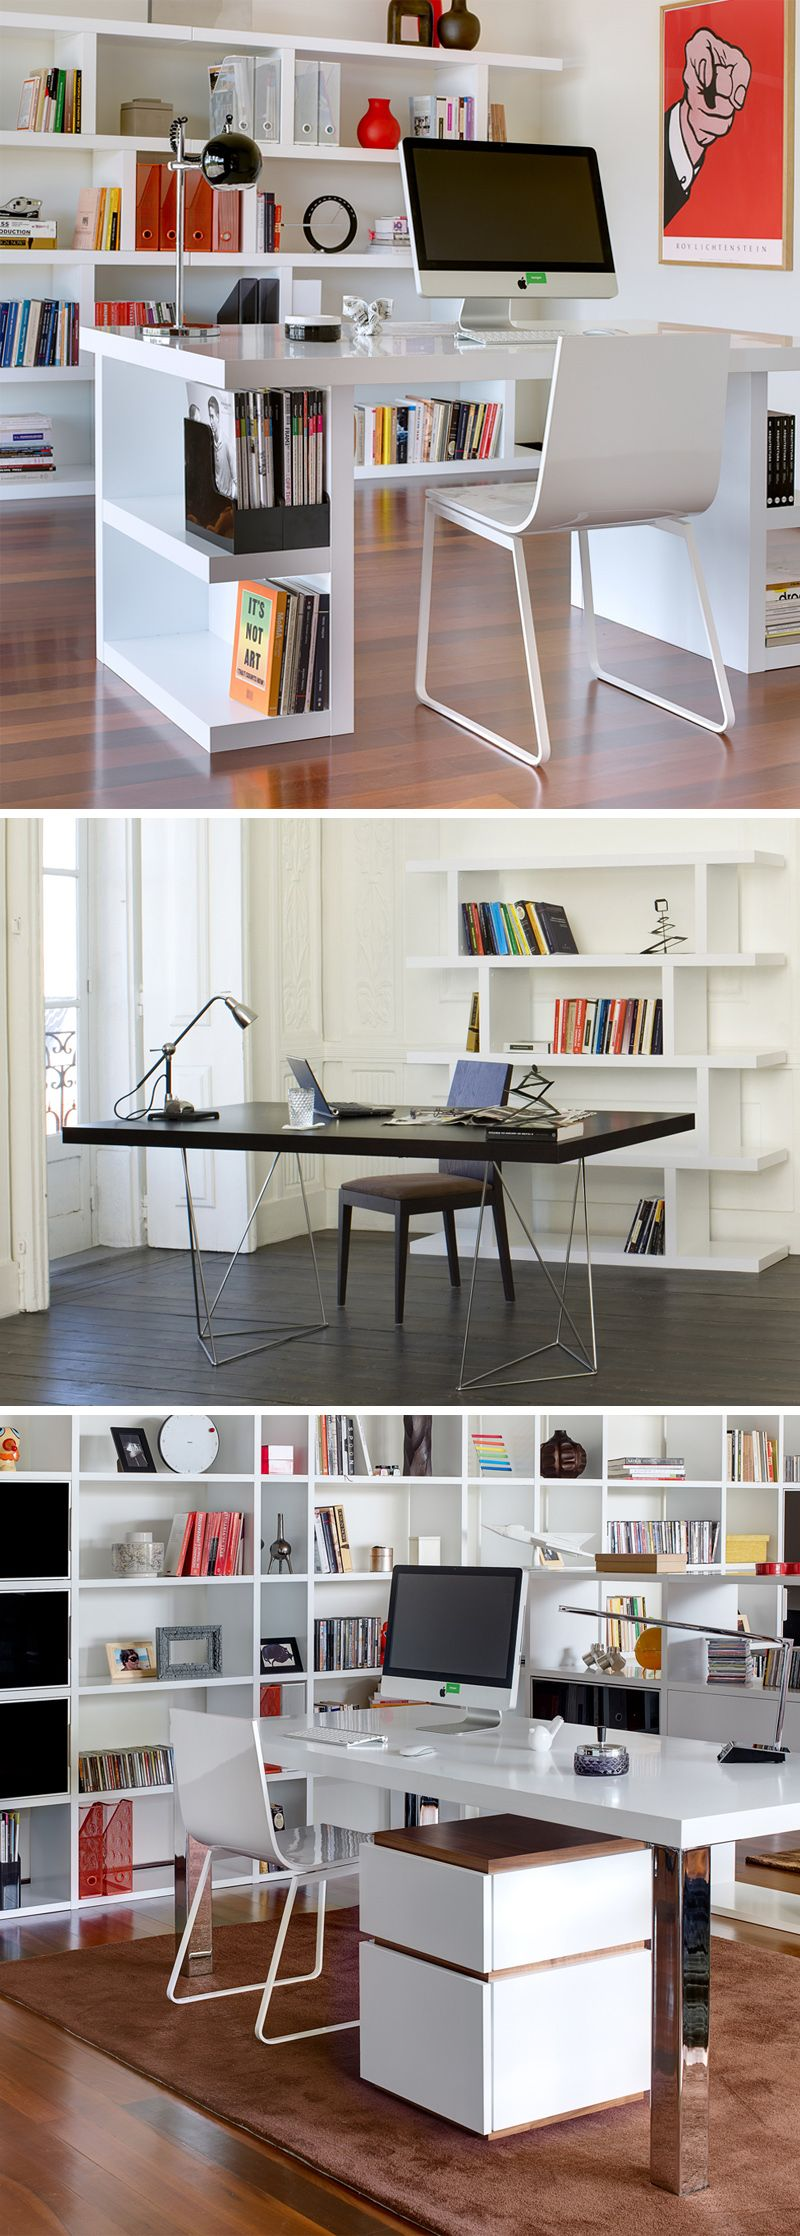 Multi Table with Trestle Base | Office interiors, Desks and ...